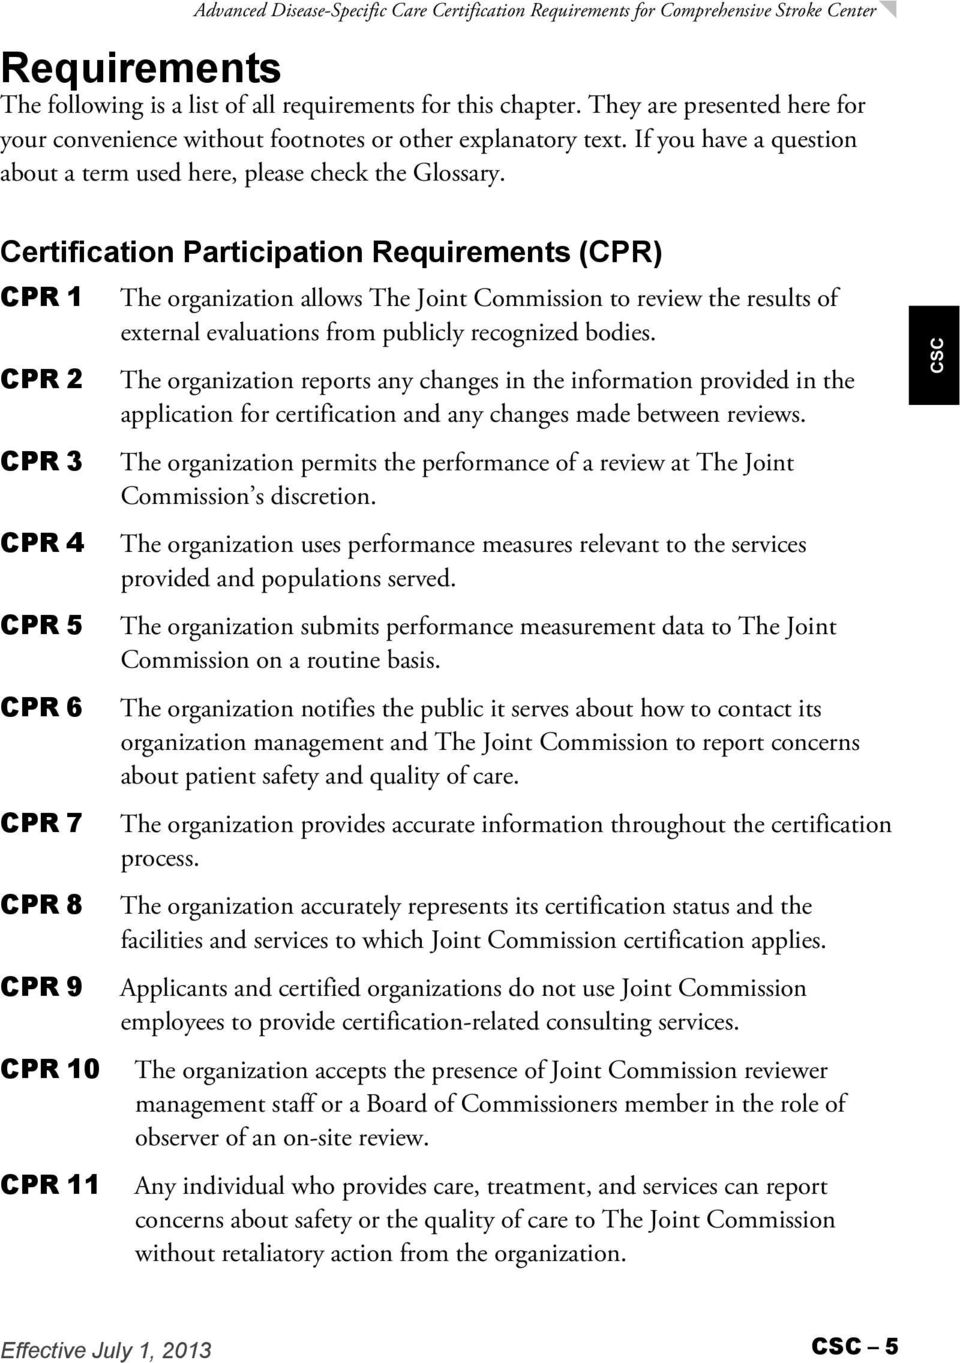 Certification Participation Requirements (CPR) CPR 1 CPR 2 CPR 3 CPR 4 CPR 5 CPR 6 CPR 7 CPR 8 CPR 9 CPR 10 CPR 11 The organization allows The Joint Commission to review the results of external